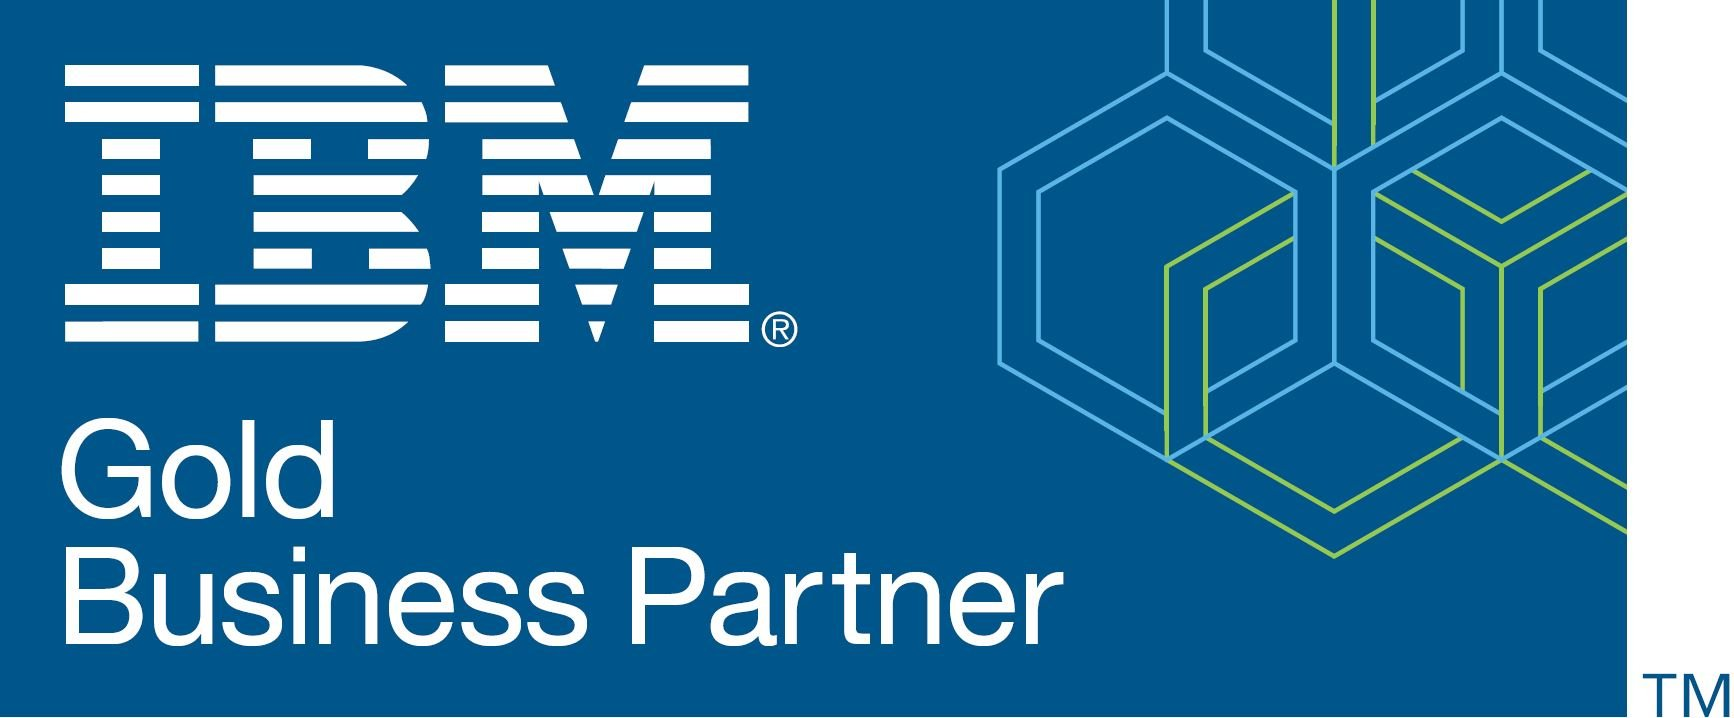 ibm gold business partner